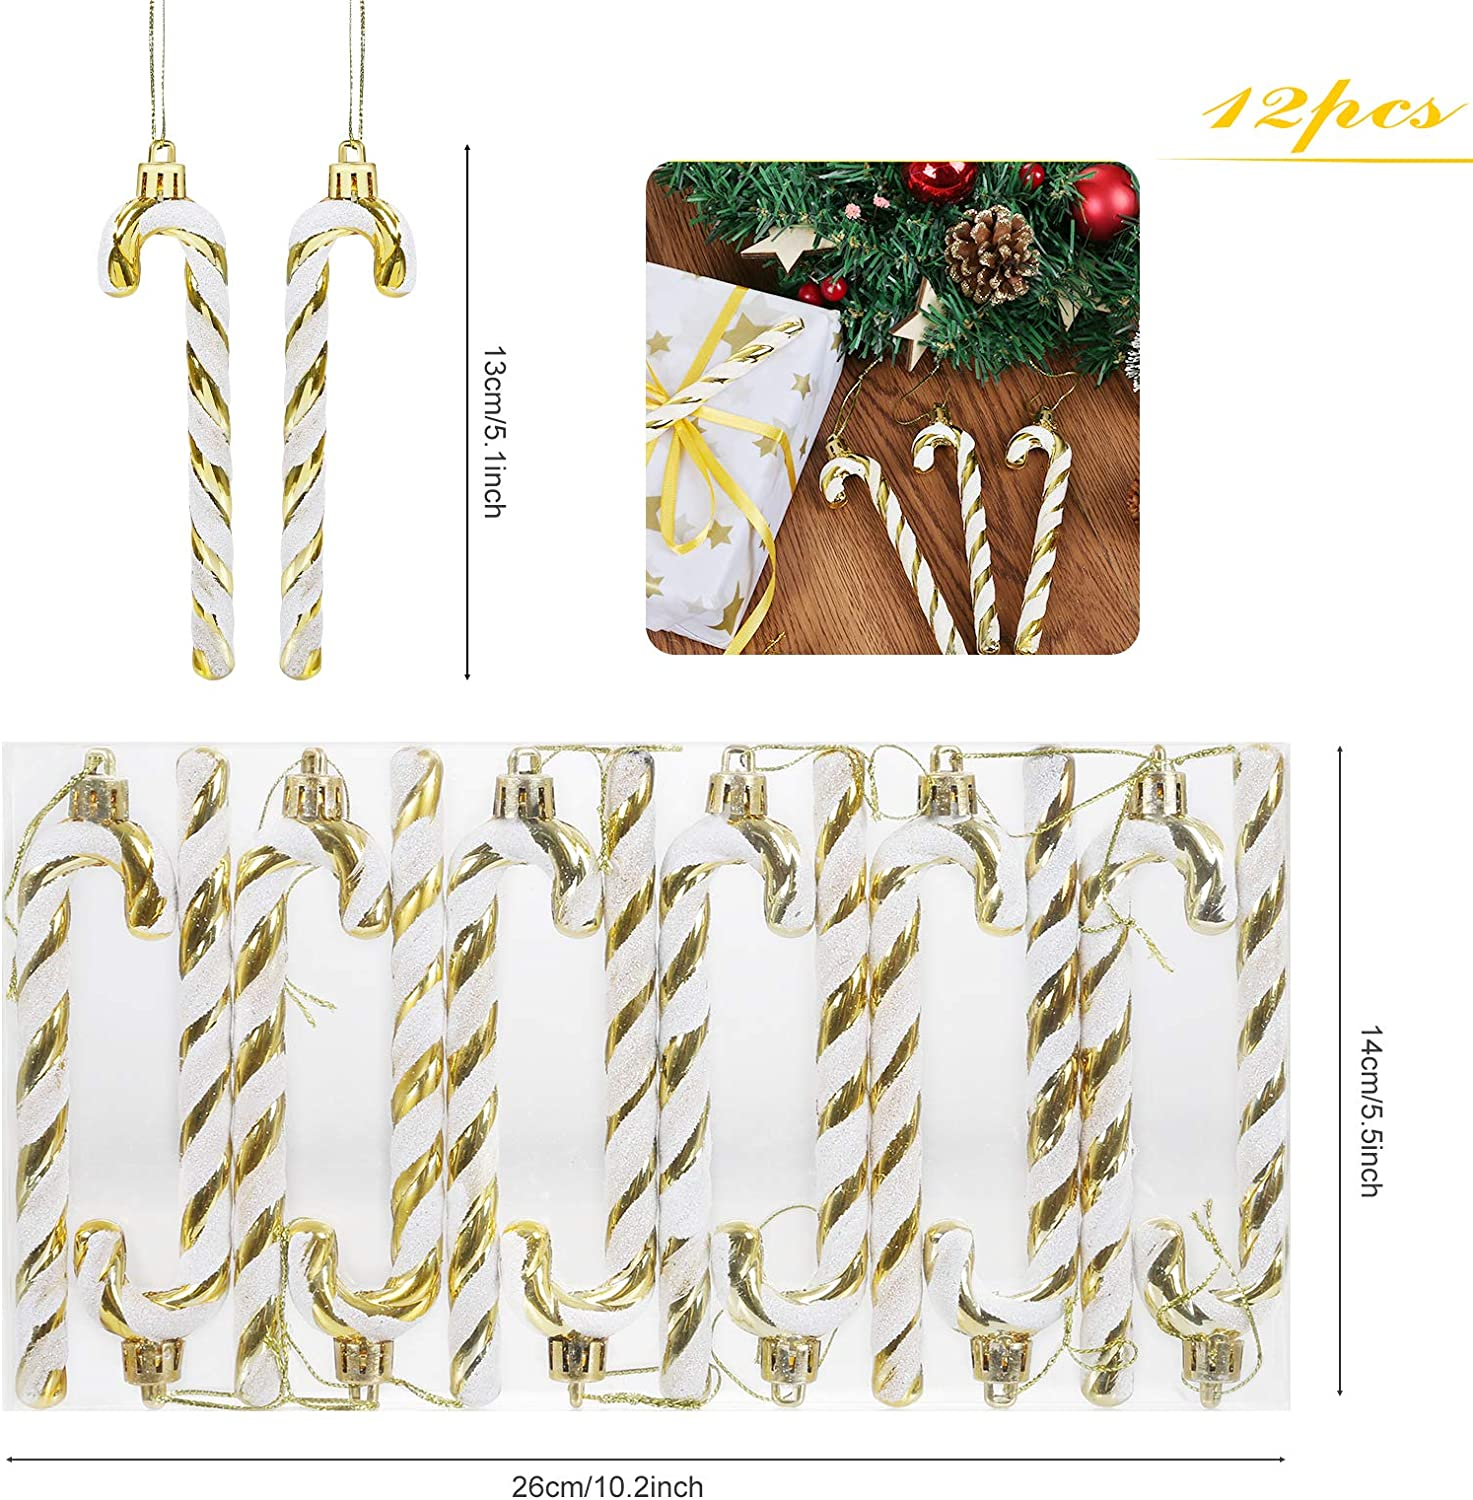 Gold /& Silver GWHOLE 12 Pack of Christmas Glitter Candy Cane Christmas Tree Hanging Ornament Candy Cane Crutch Pendant for Christmas Tree Decorations